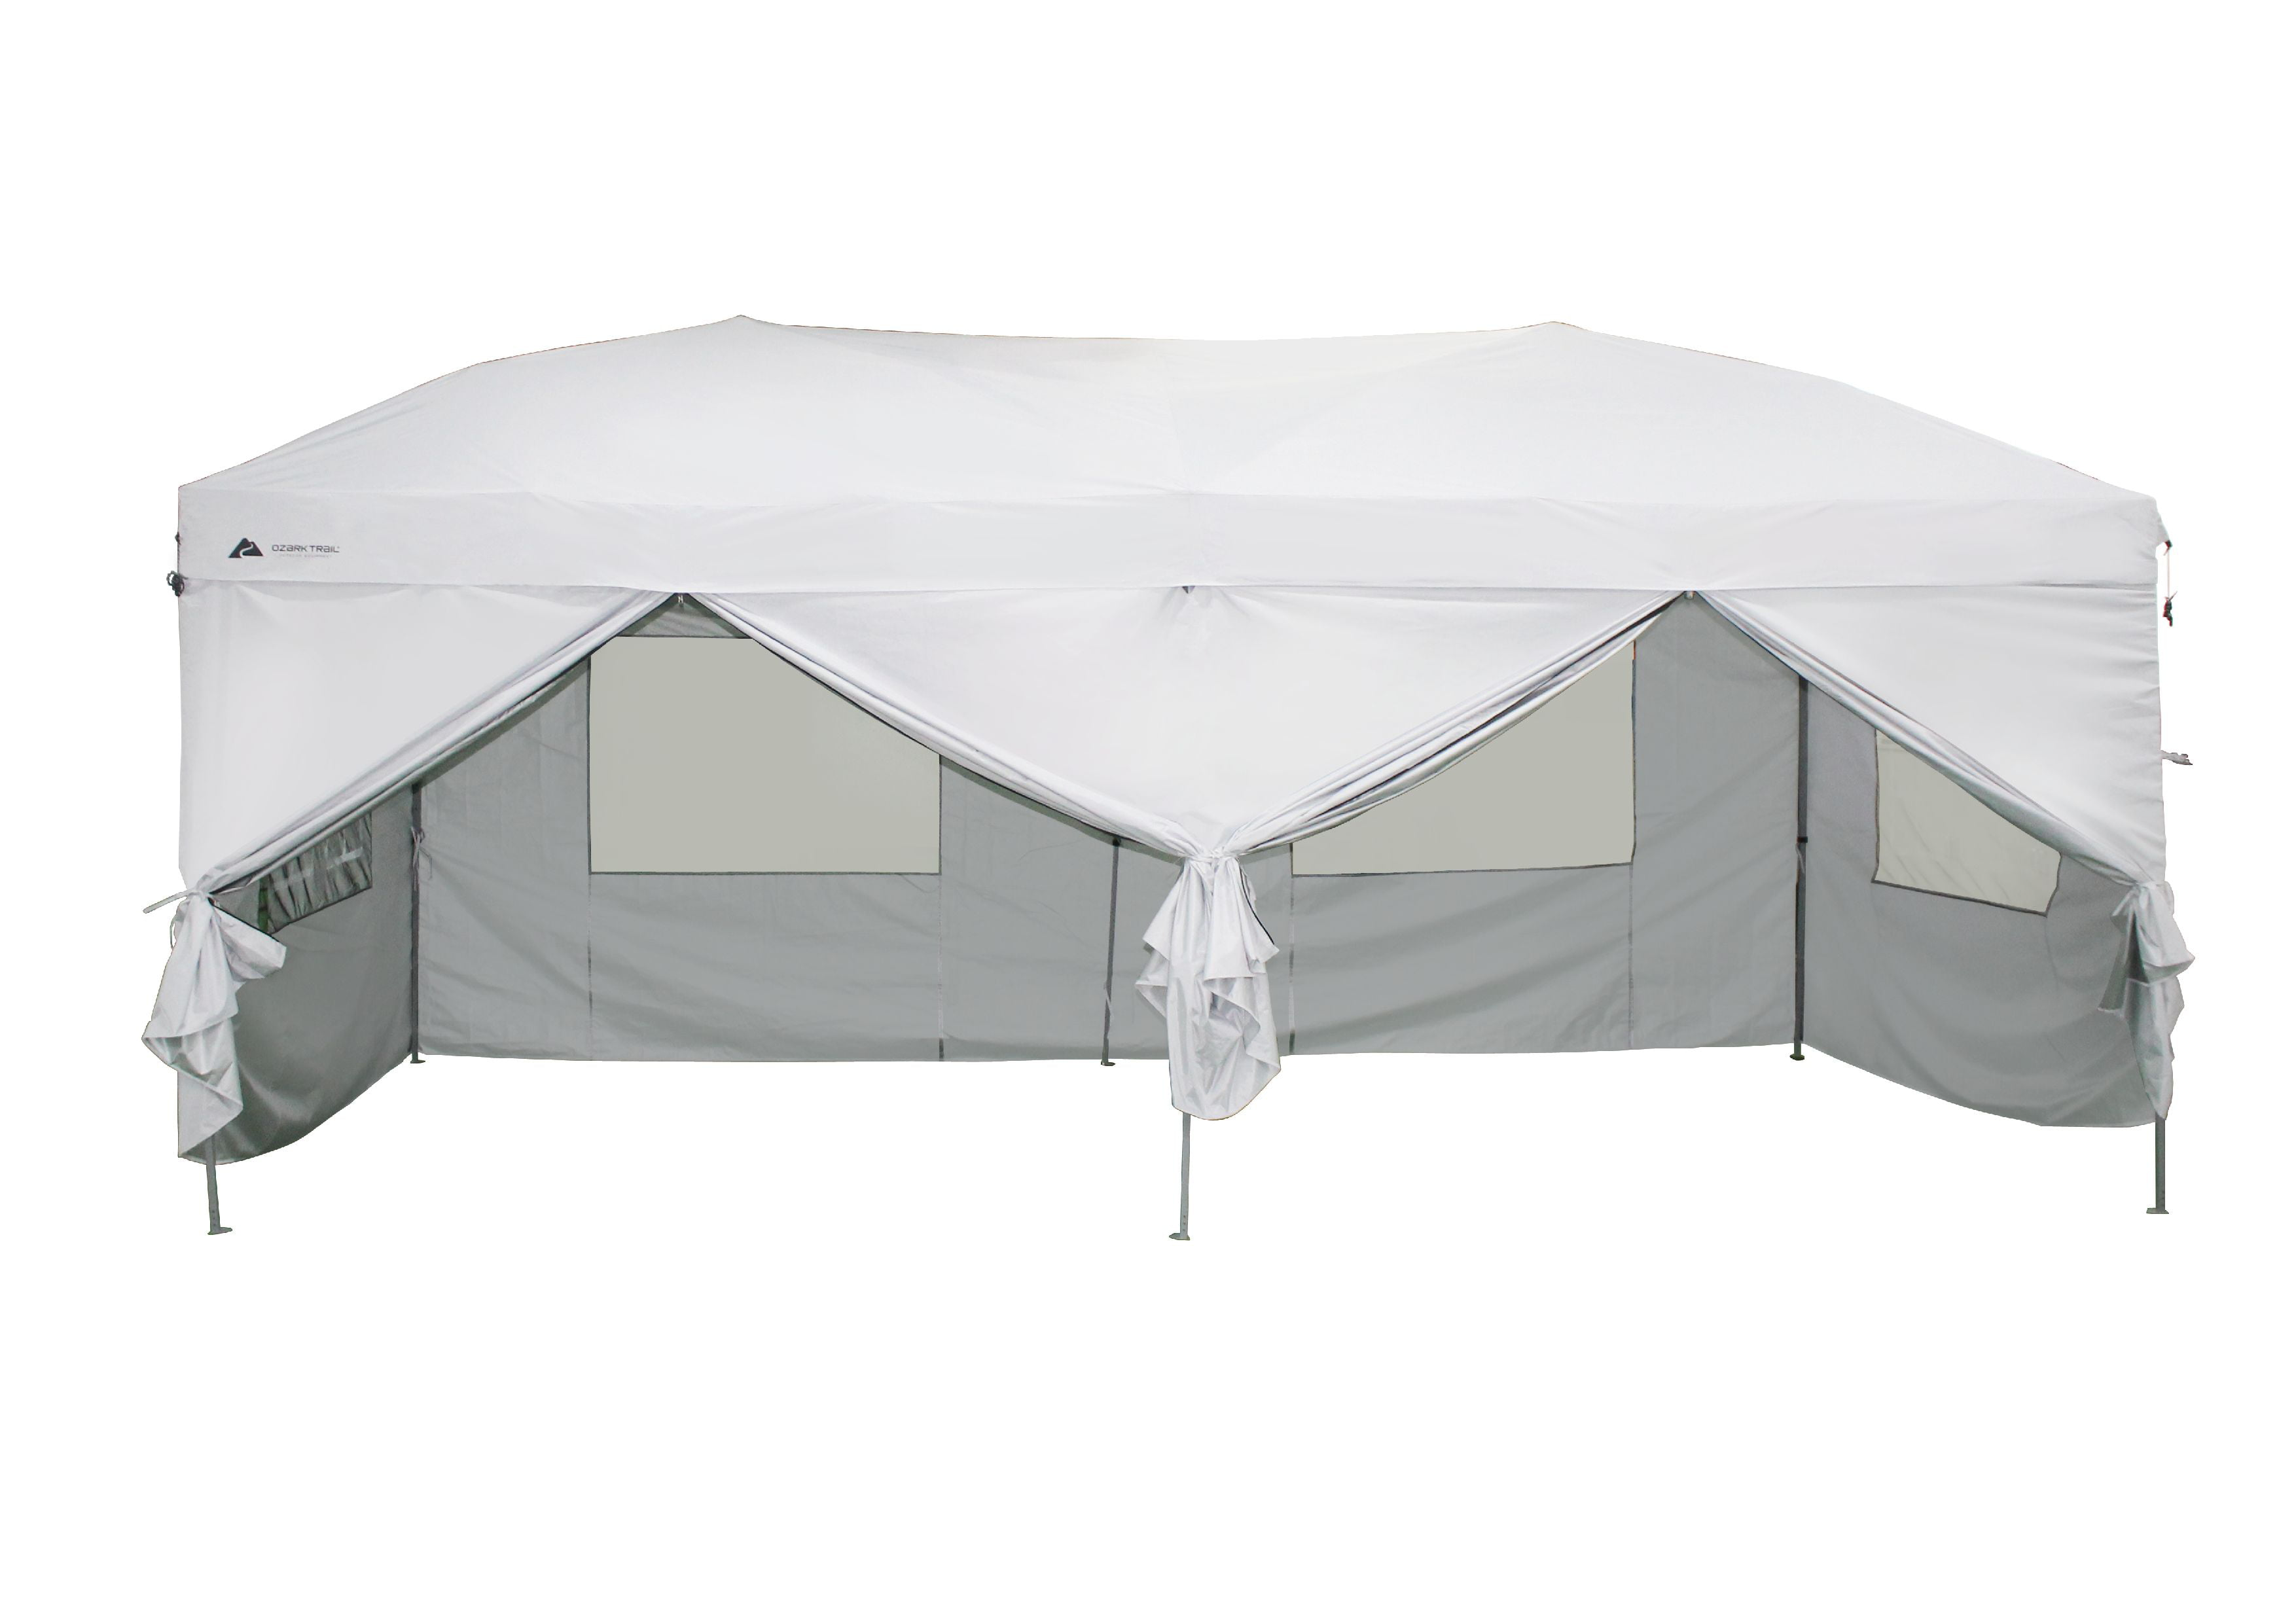 Ozark Trail 20x10 Canopy with Side Walls by WESTFIELD OUTDOOR INC